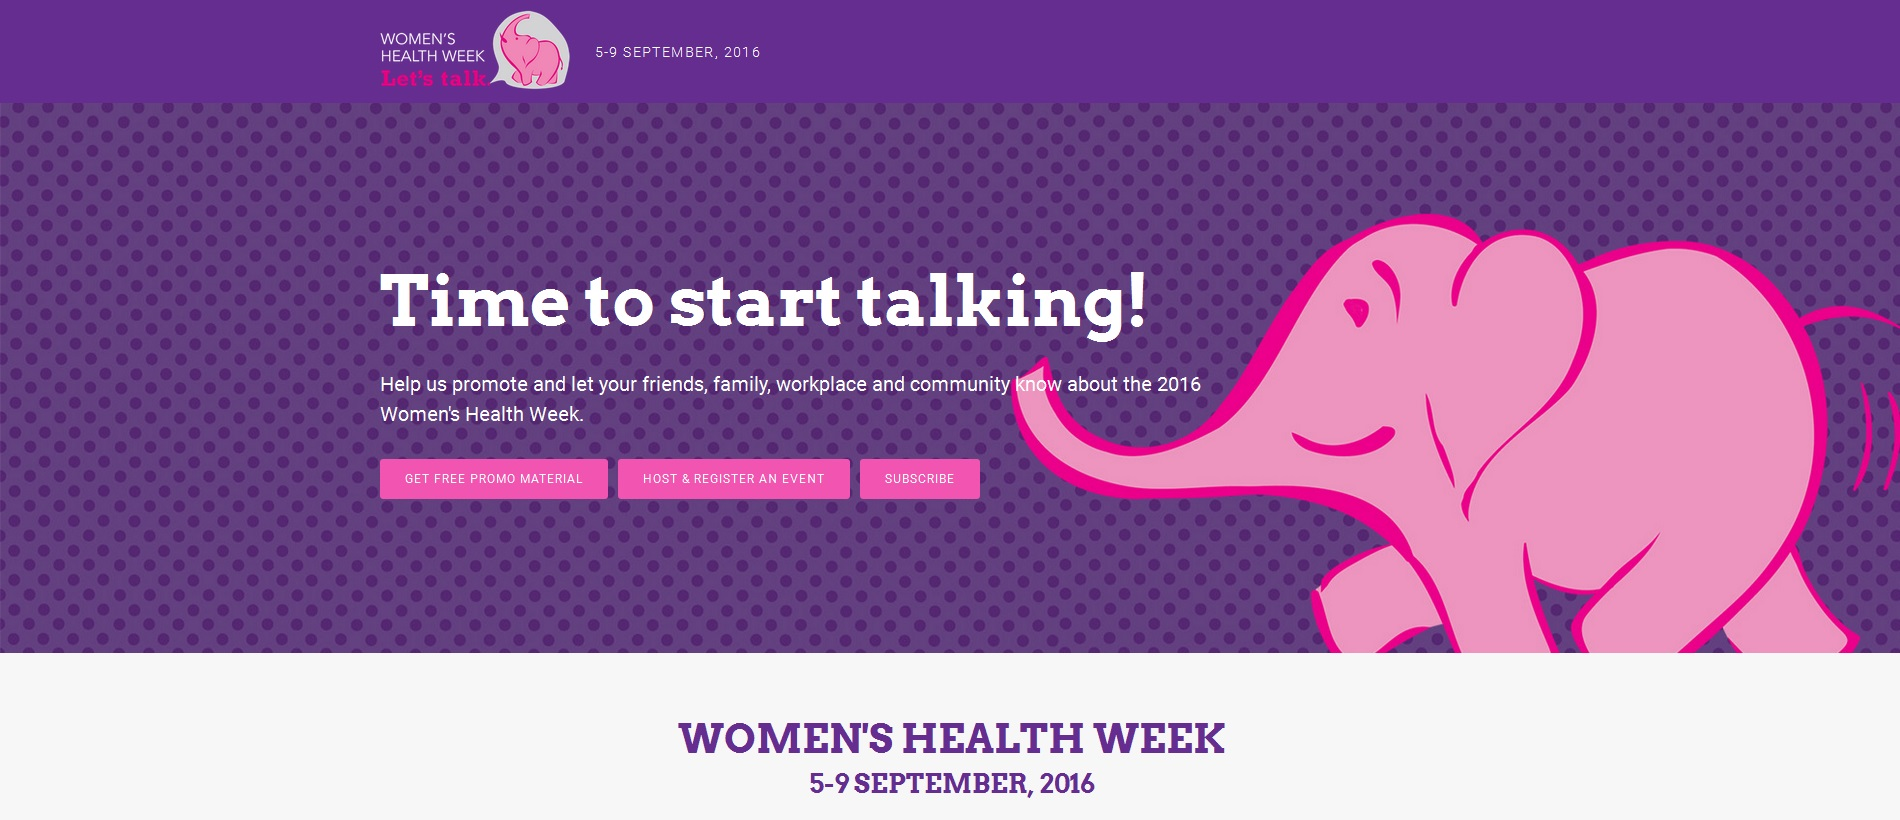 Women's Health Week (5 - 9 September 2016)